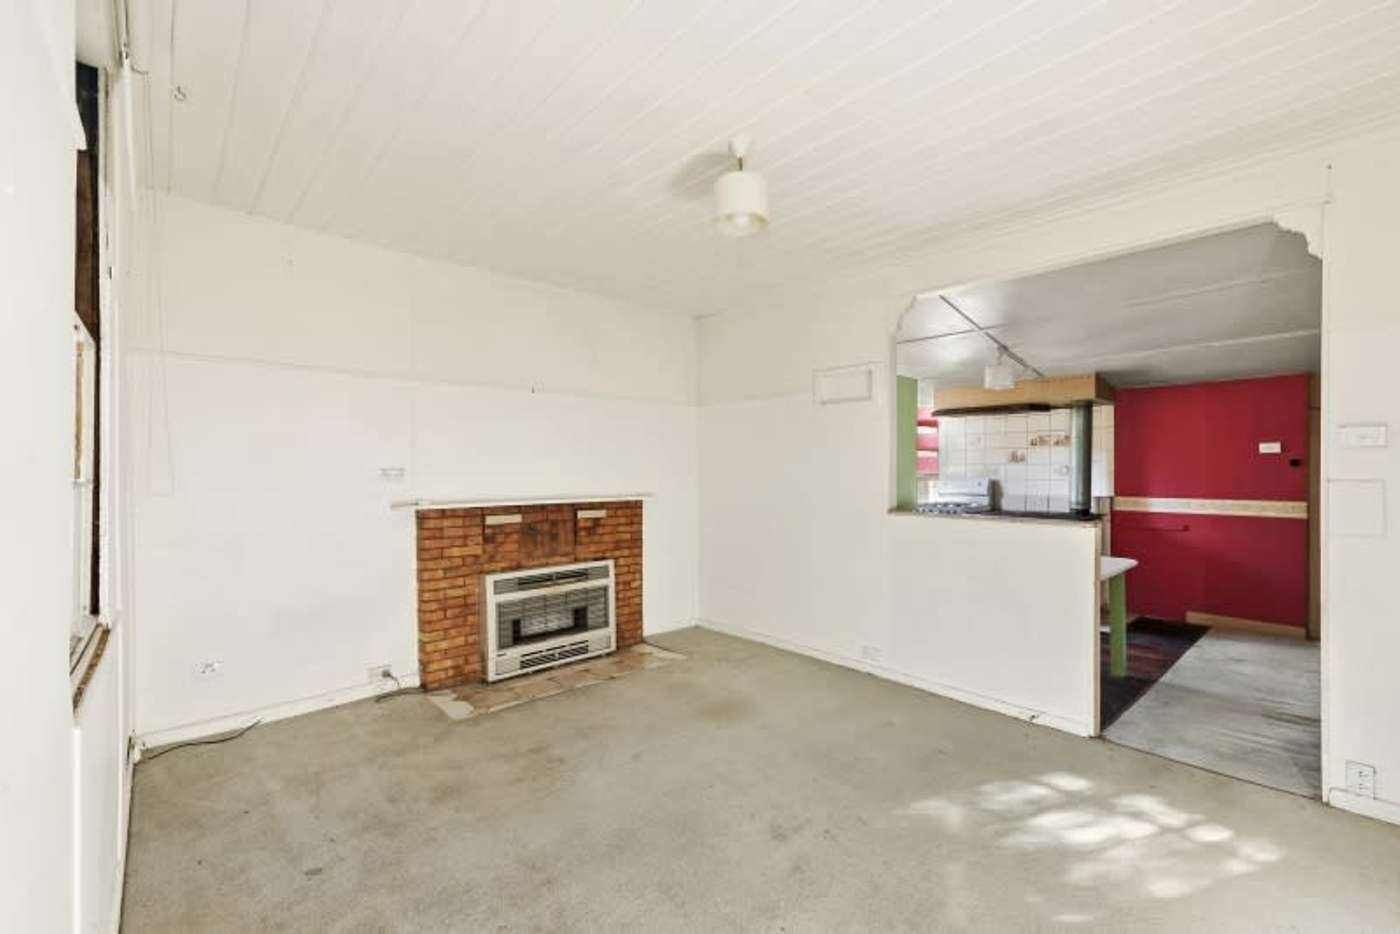 Sixth view of Homely house listing, 615 Eyre Street, Buninyong VIC 3357